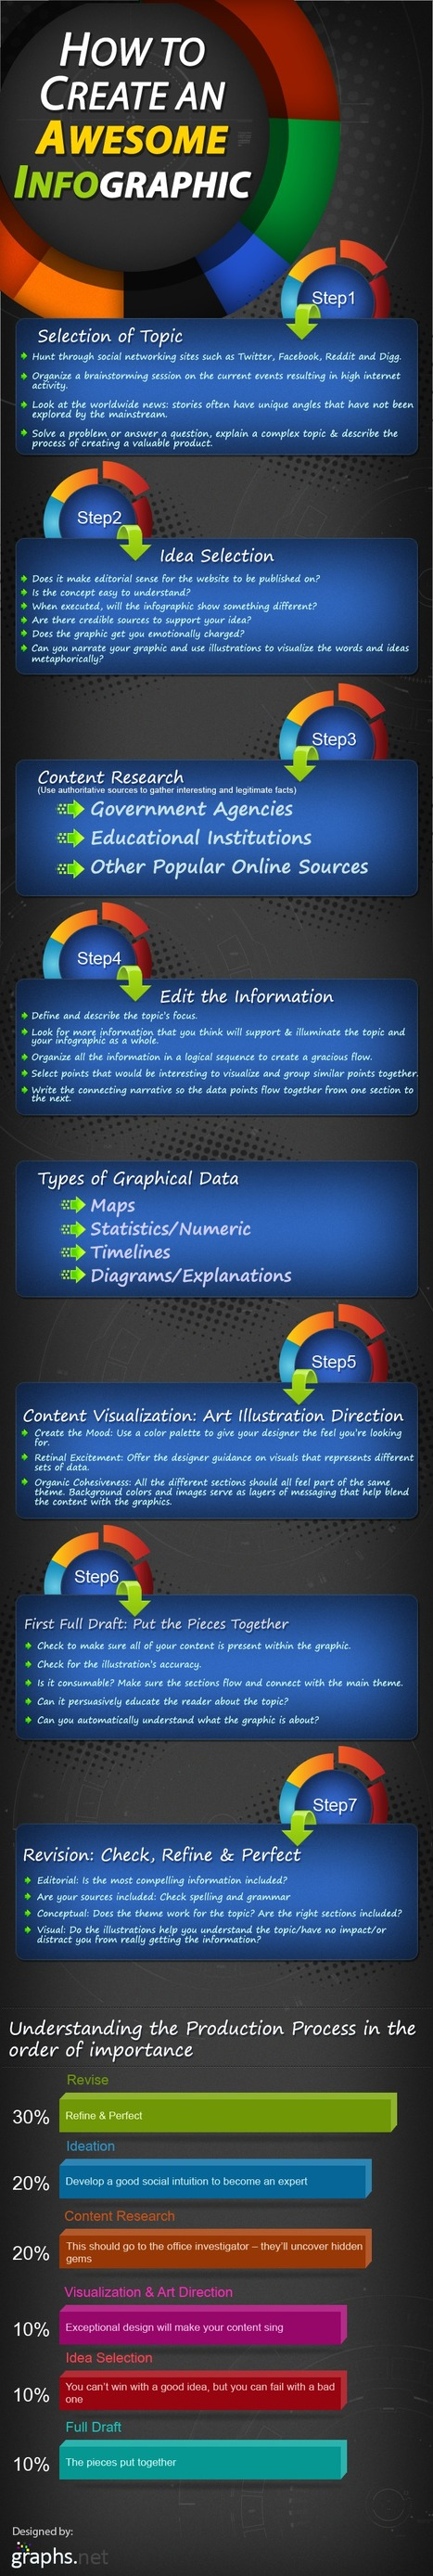 How to Create an Awesome Infographic | Graphs.net | Infographics for education | Scoop.it